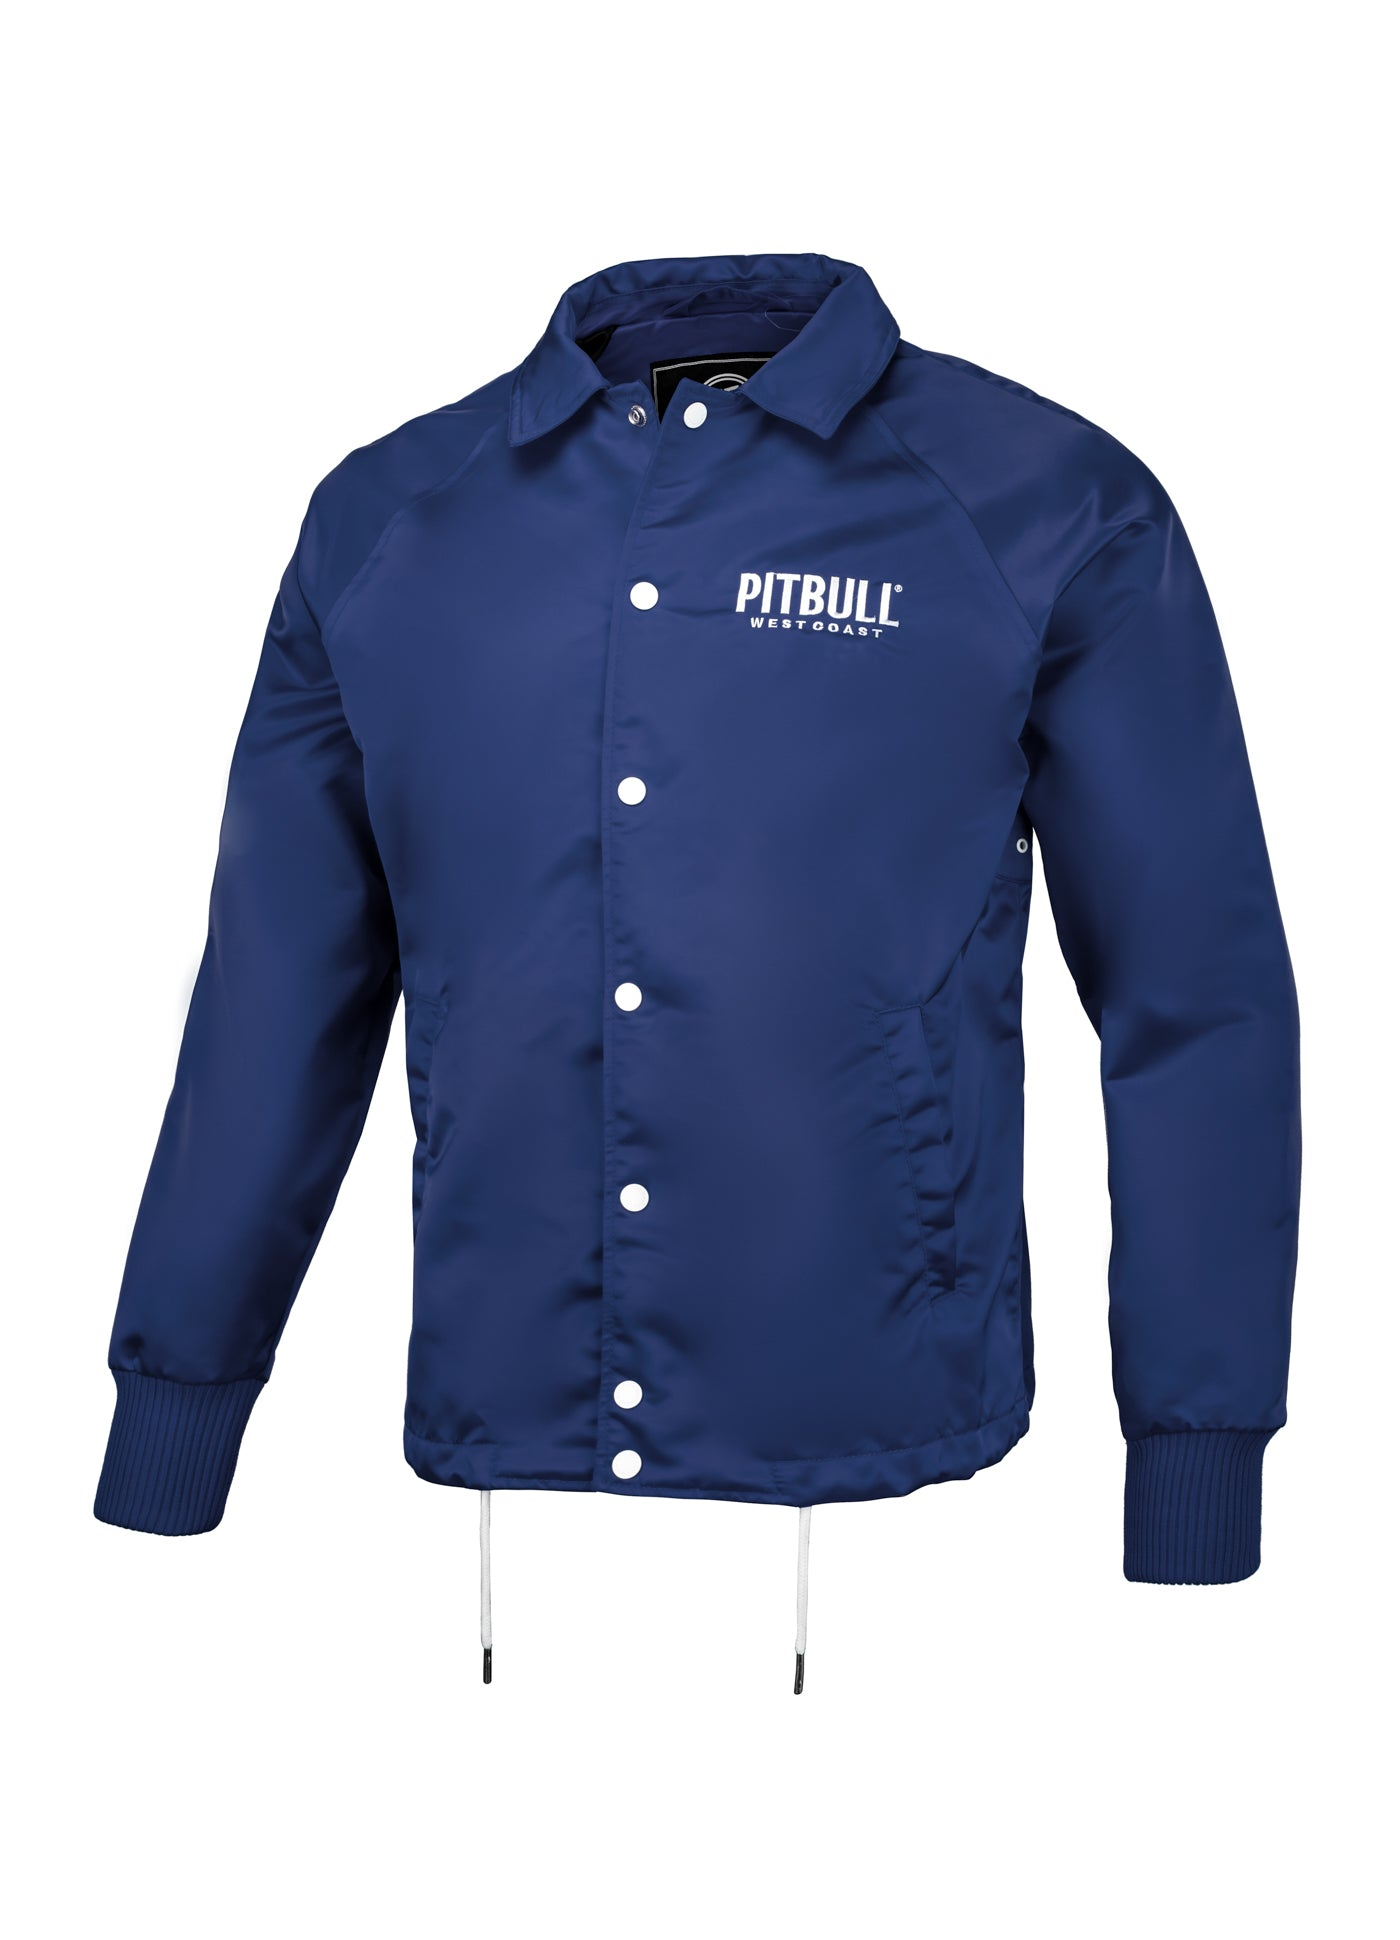 WICK Coach Jacket Navy - pitbullwestcoast